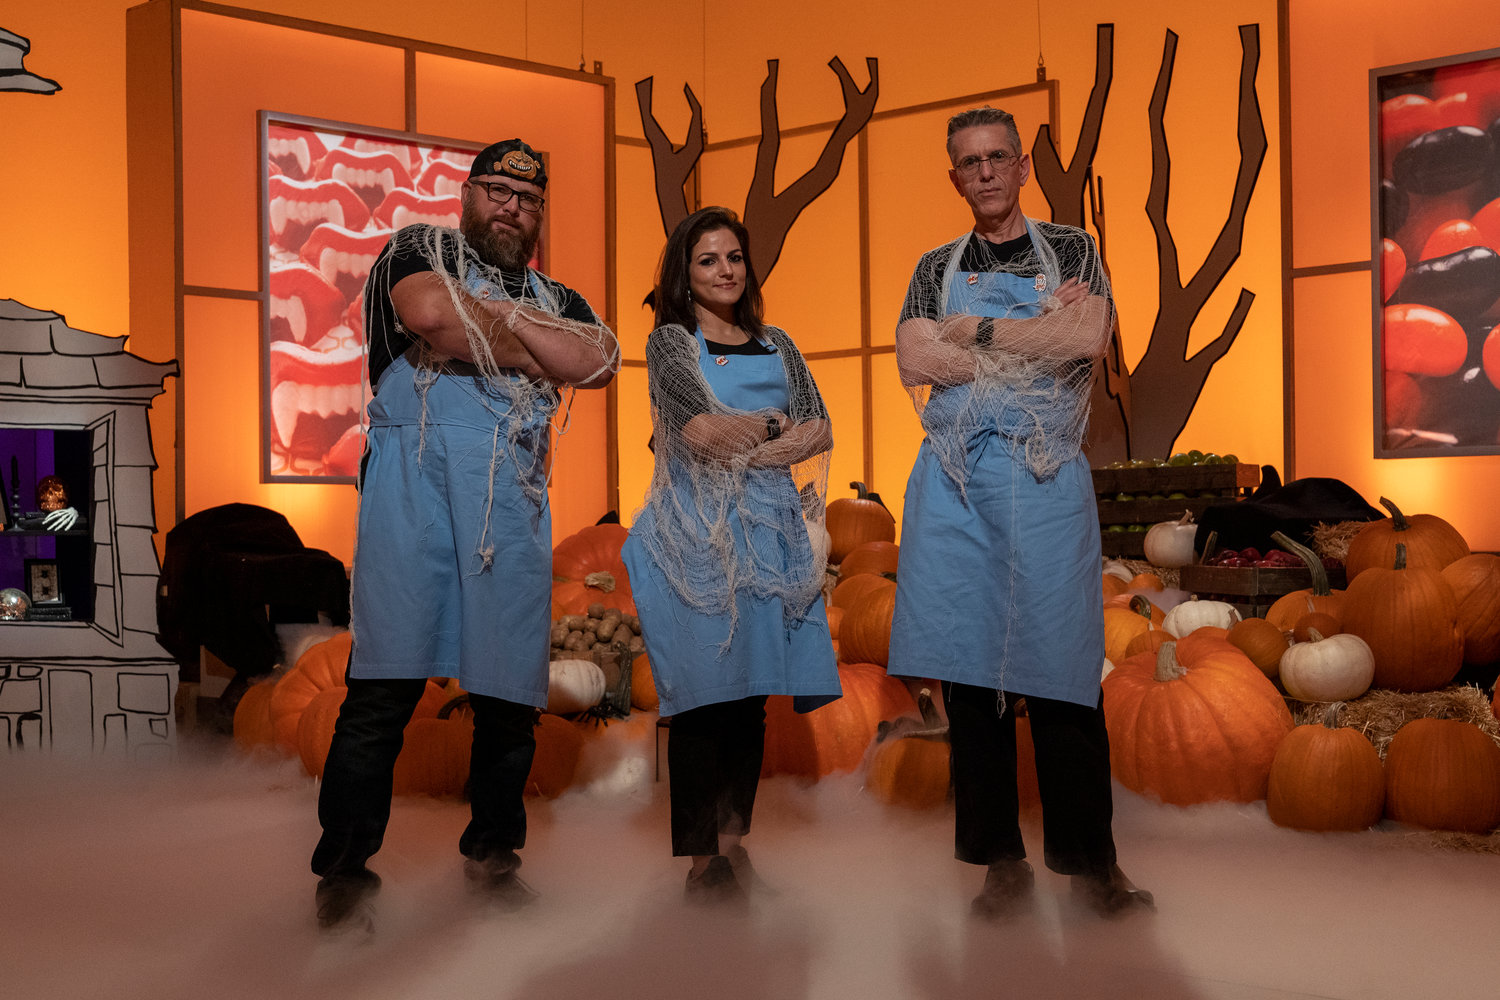 Hemu Basu (center) poses with her Mummies Rejects teammates Daniel Miller (left) and Steve Weiss (right). While Basu could not divulge the results of the show due to agreements with Food Network, she did say she was very proud of how her team performed.